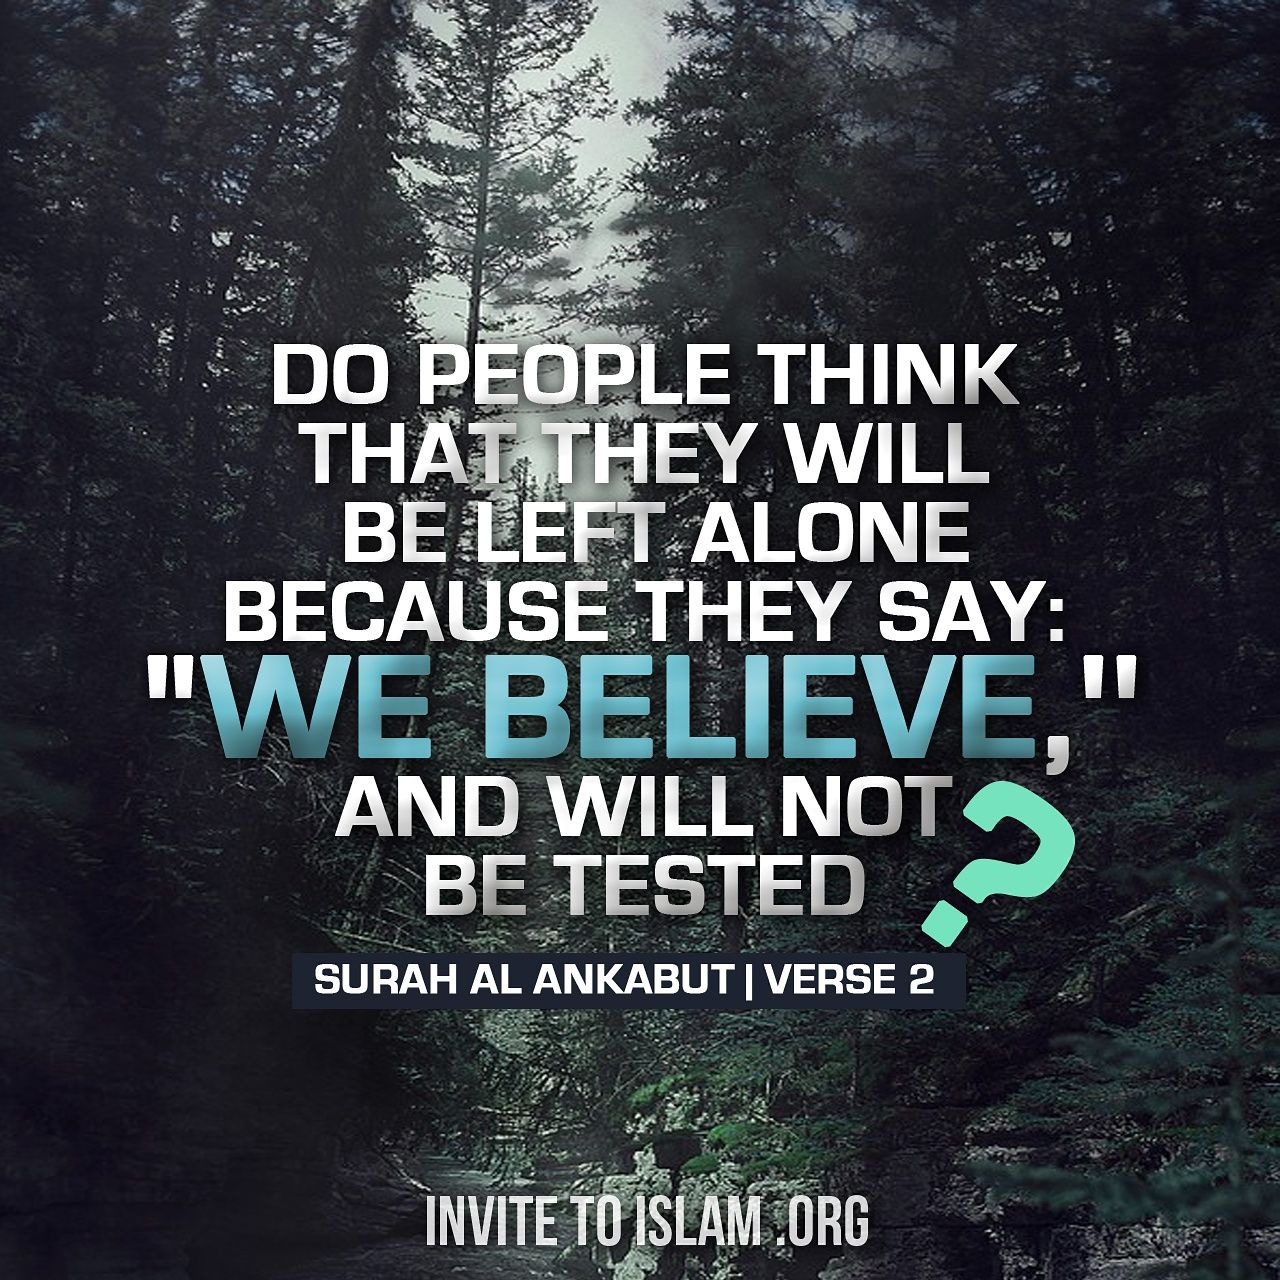 Invite to islam photo quran n islam pinterest islam invite to islam photo stopboris Gallery